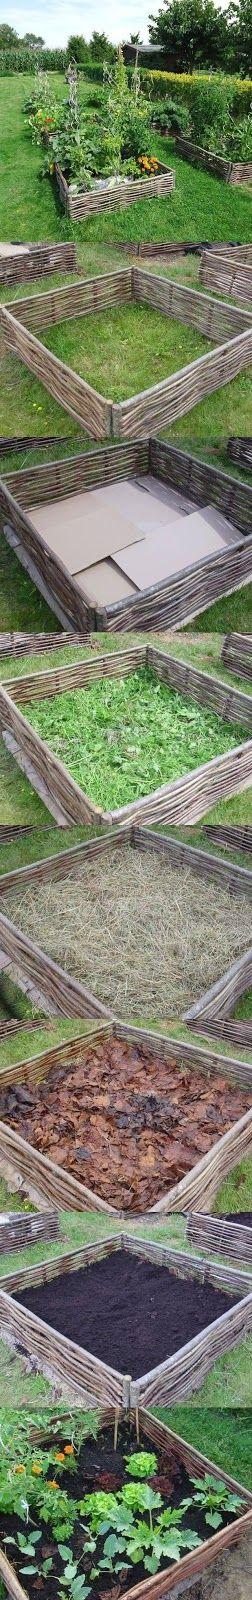 """Incorporate this """"Lasagna"""" style of bed gardening for growing veggies and edibles."""